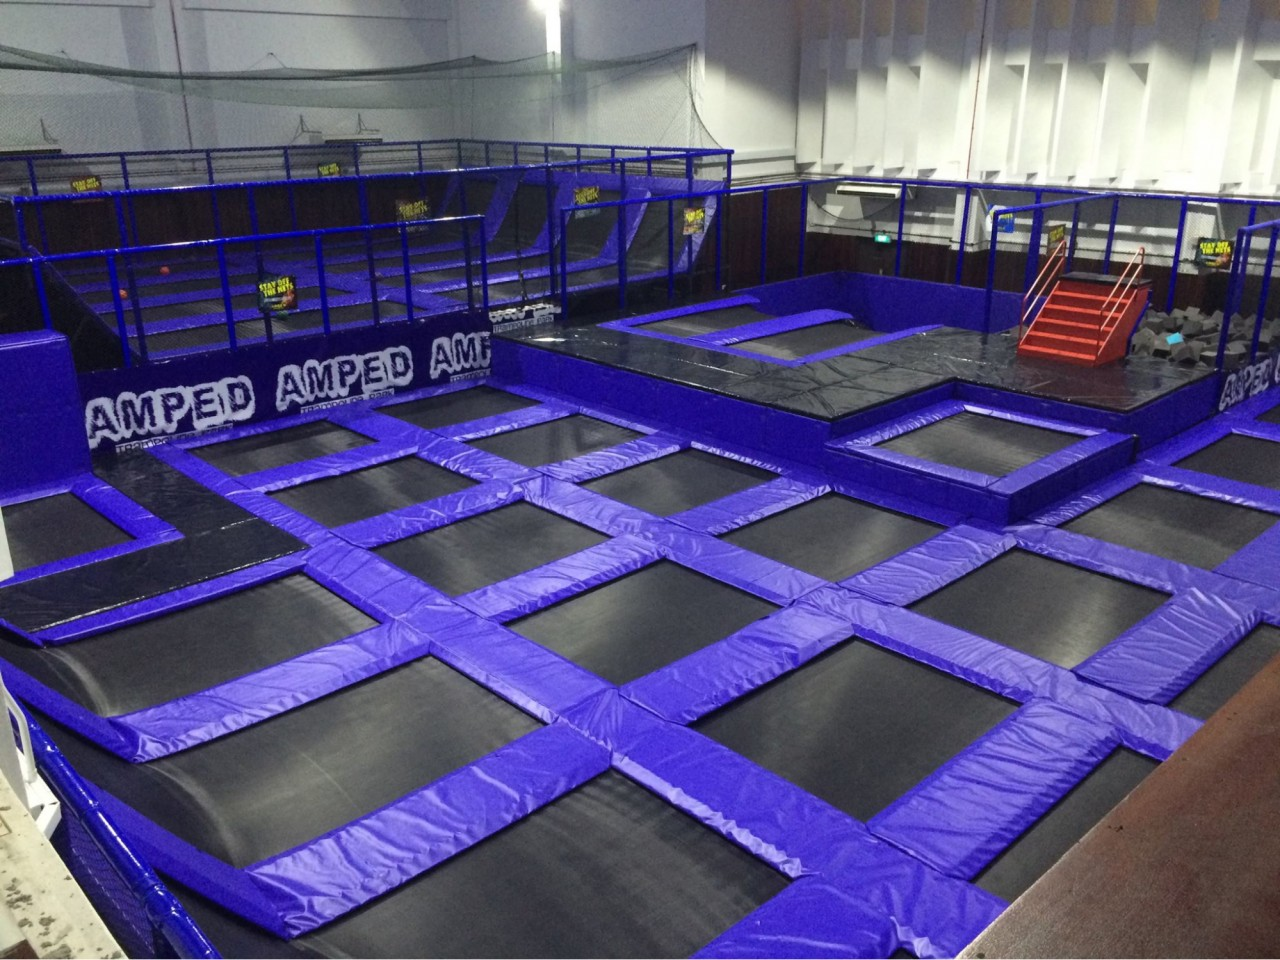 Trampoline park - Amped blue jump overview